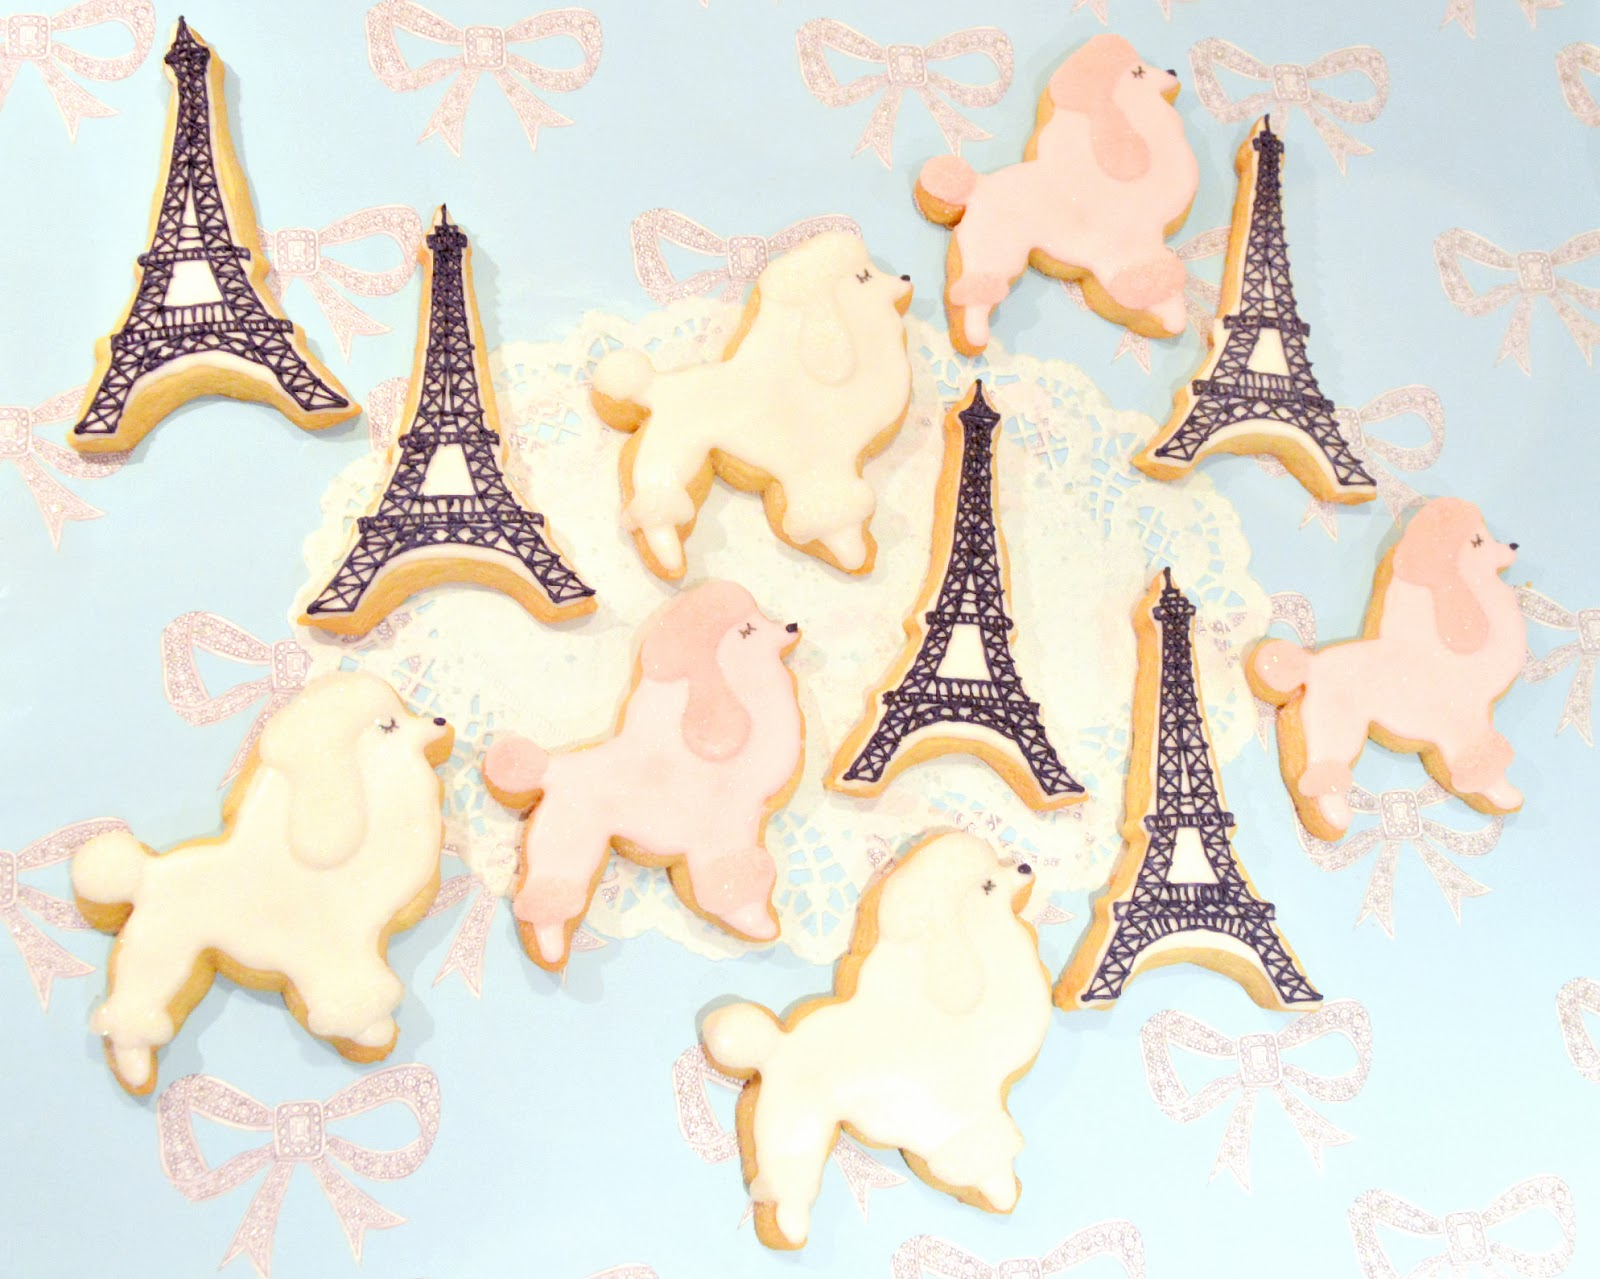 Iced Parisian Poodle Dog and Eiffel Tower Sugar Cookies Cherie Kelly Cake London